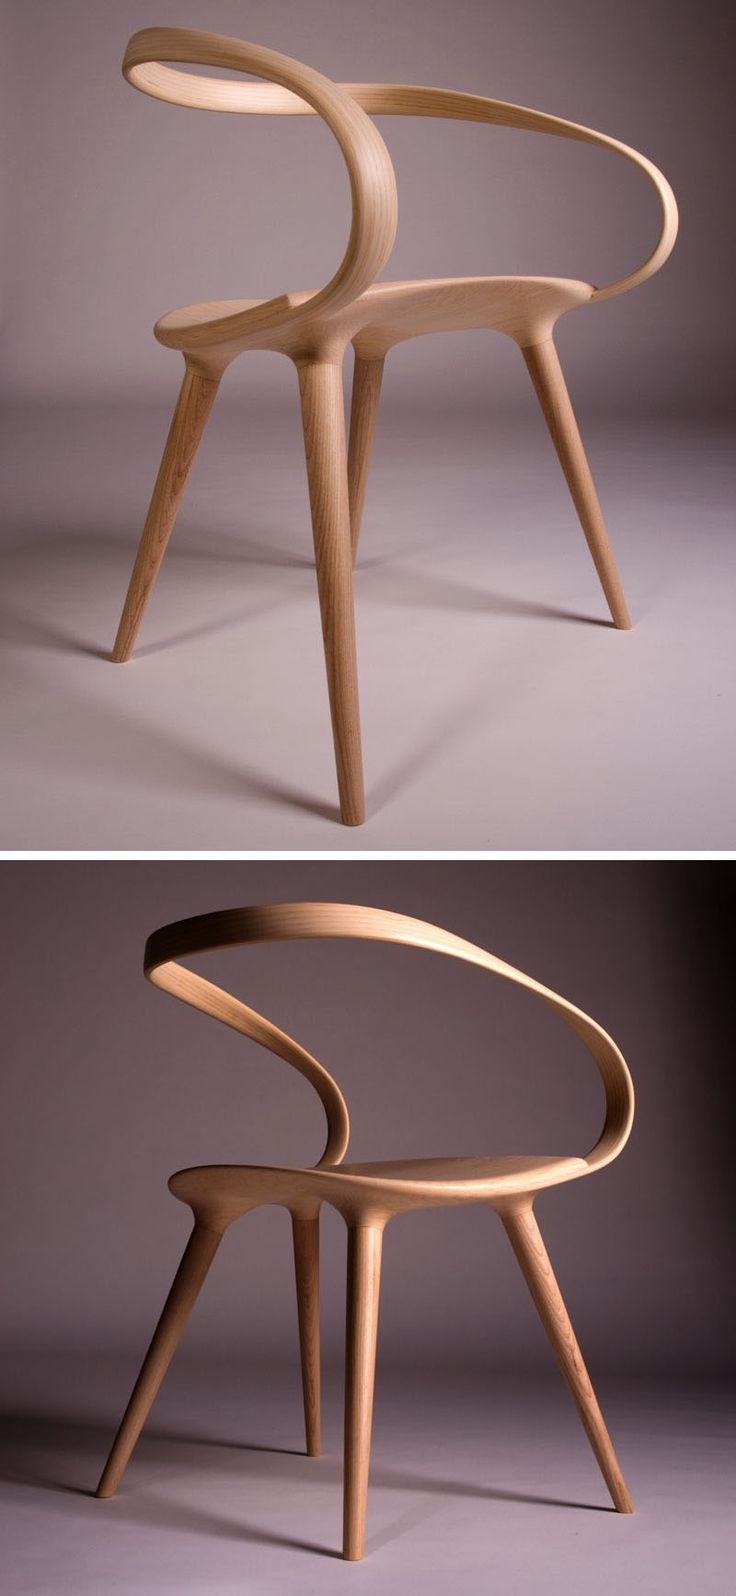 """Velo chair"" by Jan Waterson."